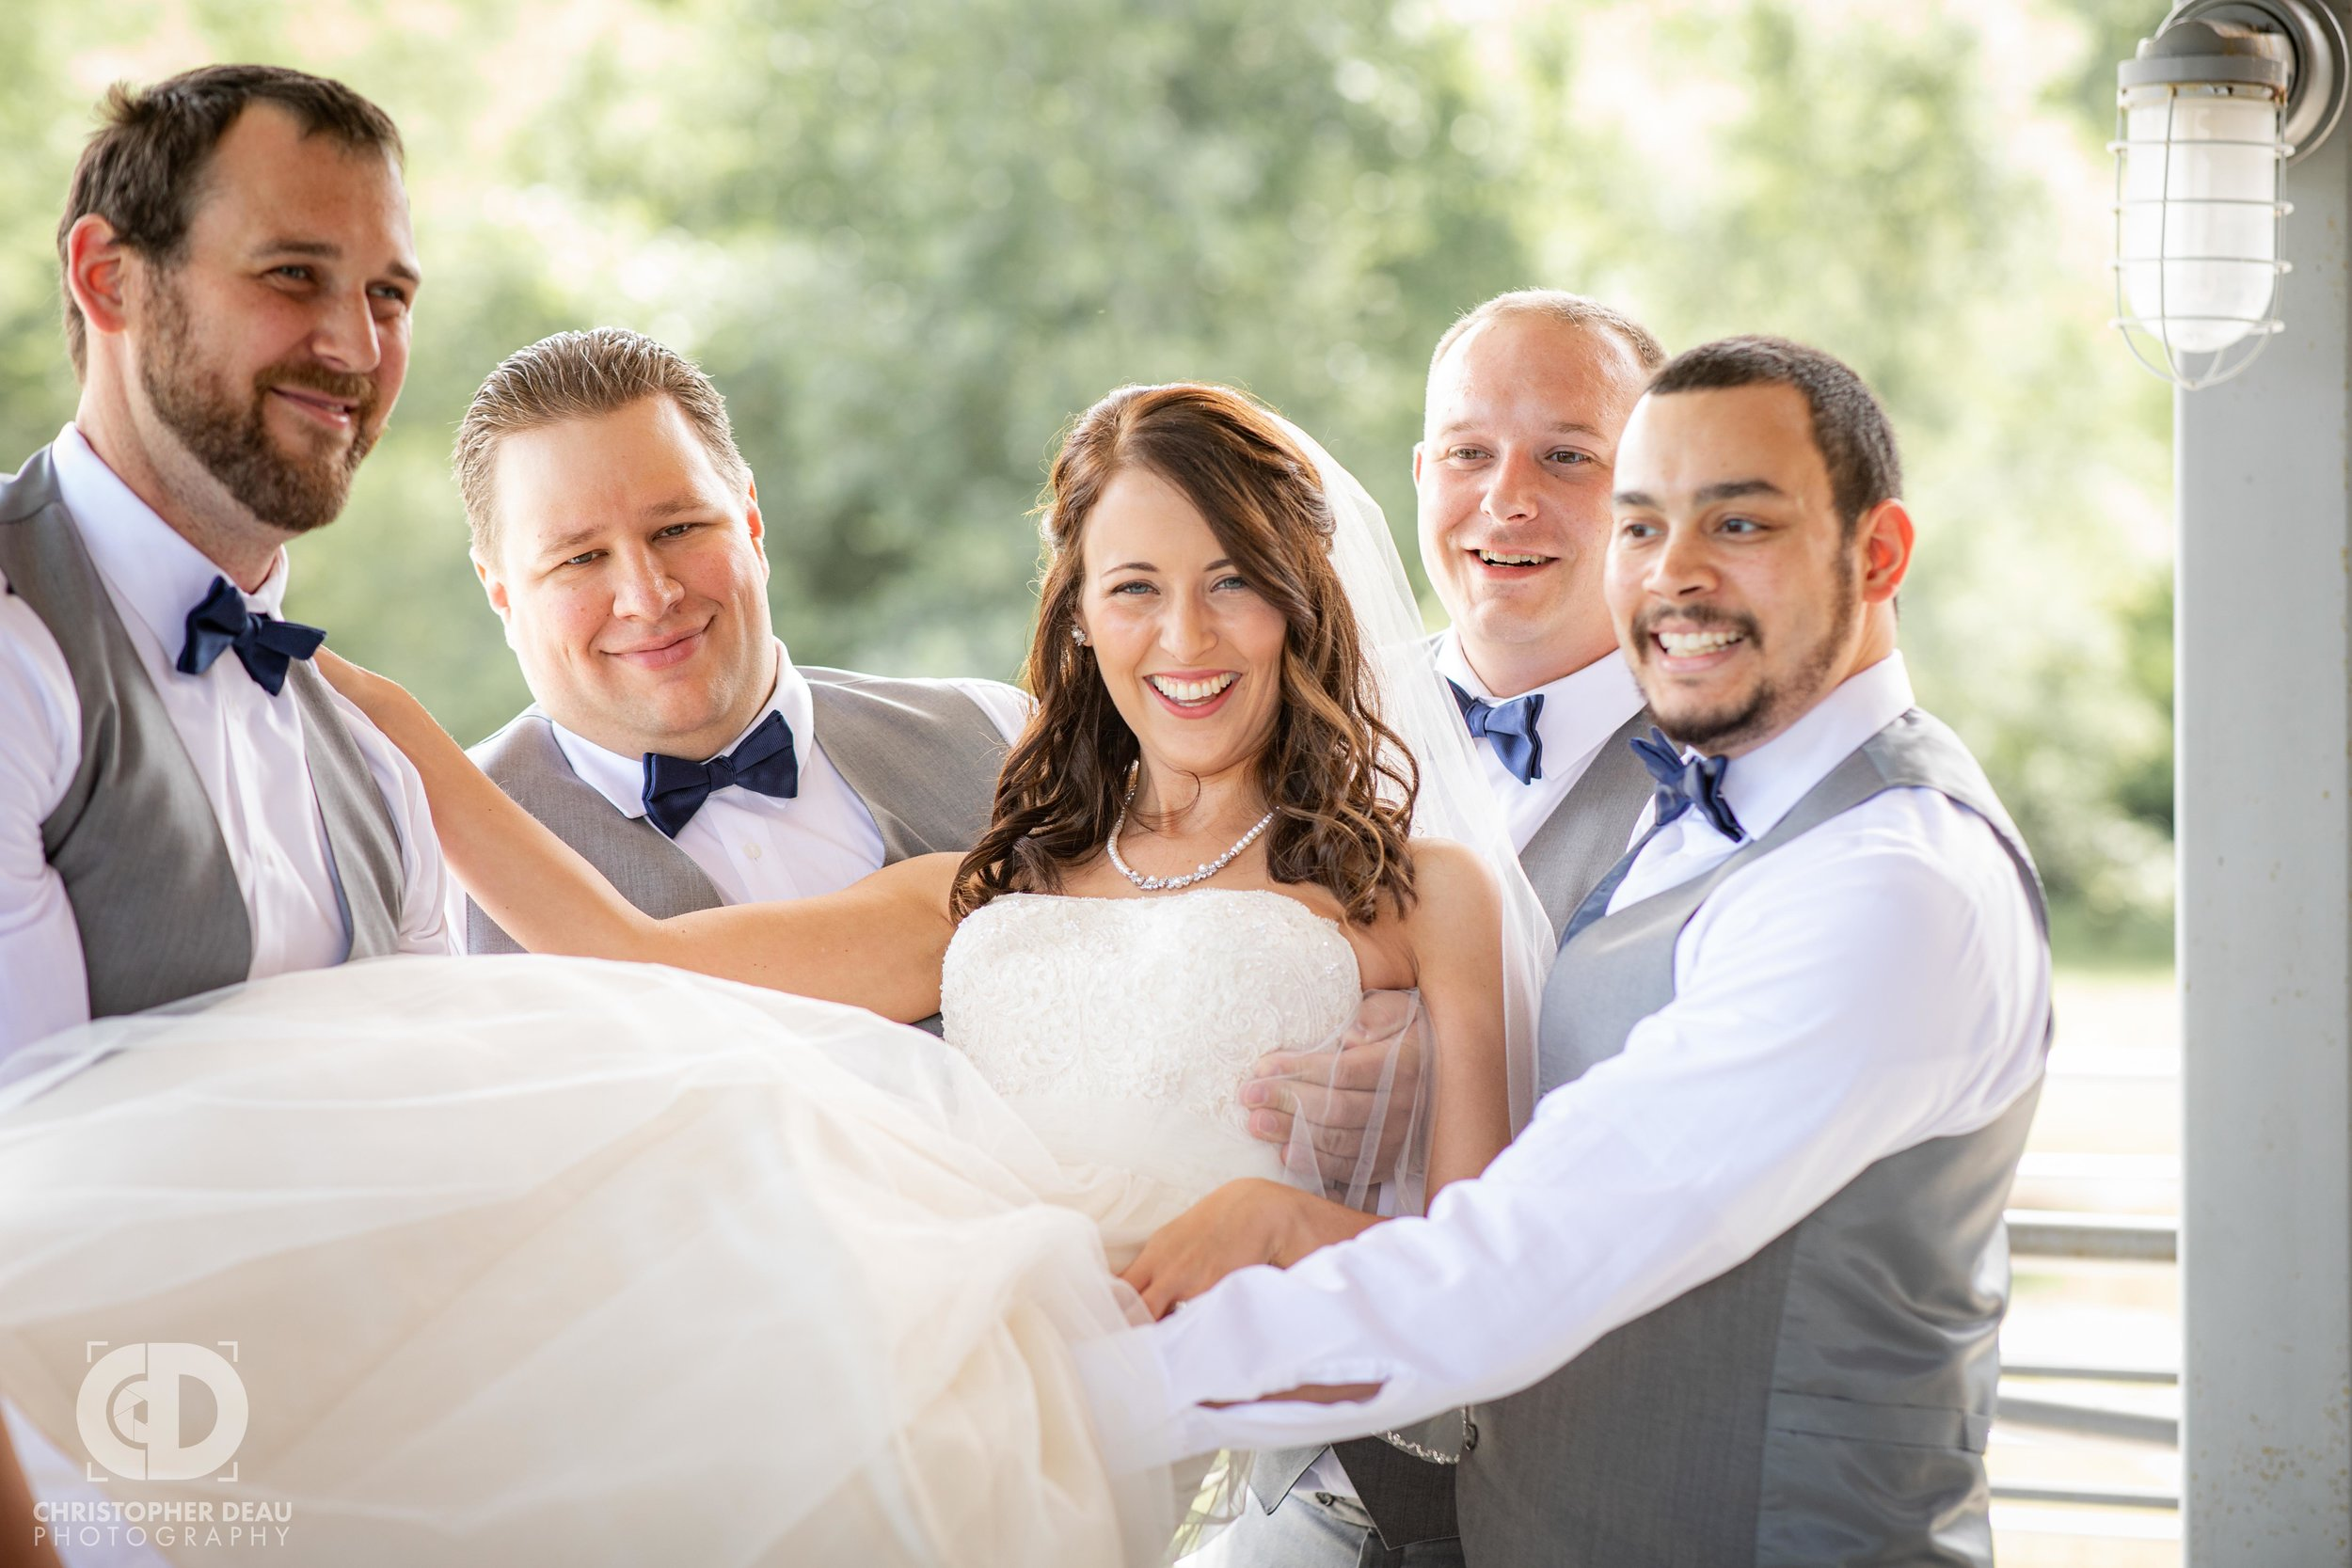 groomsmen lift up the bride